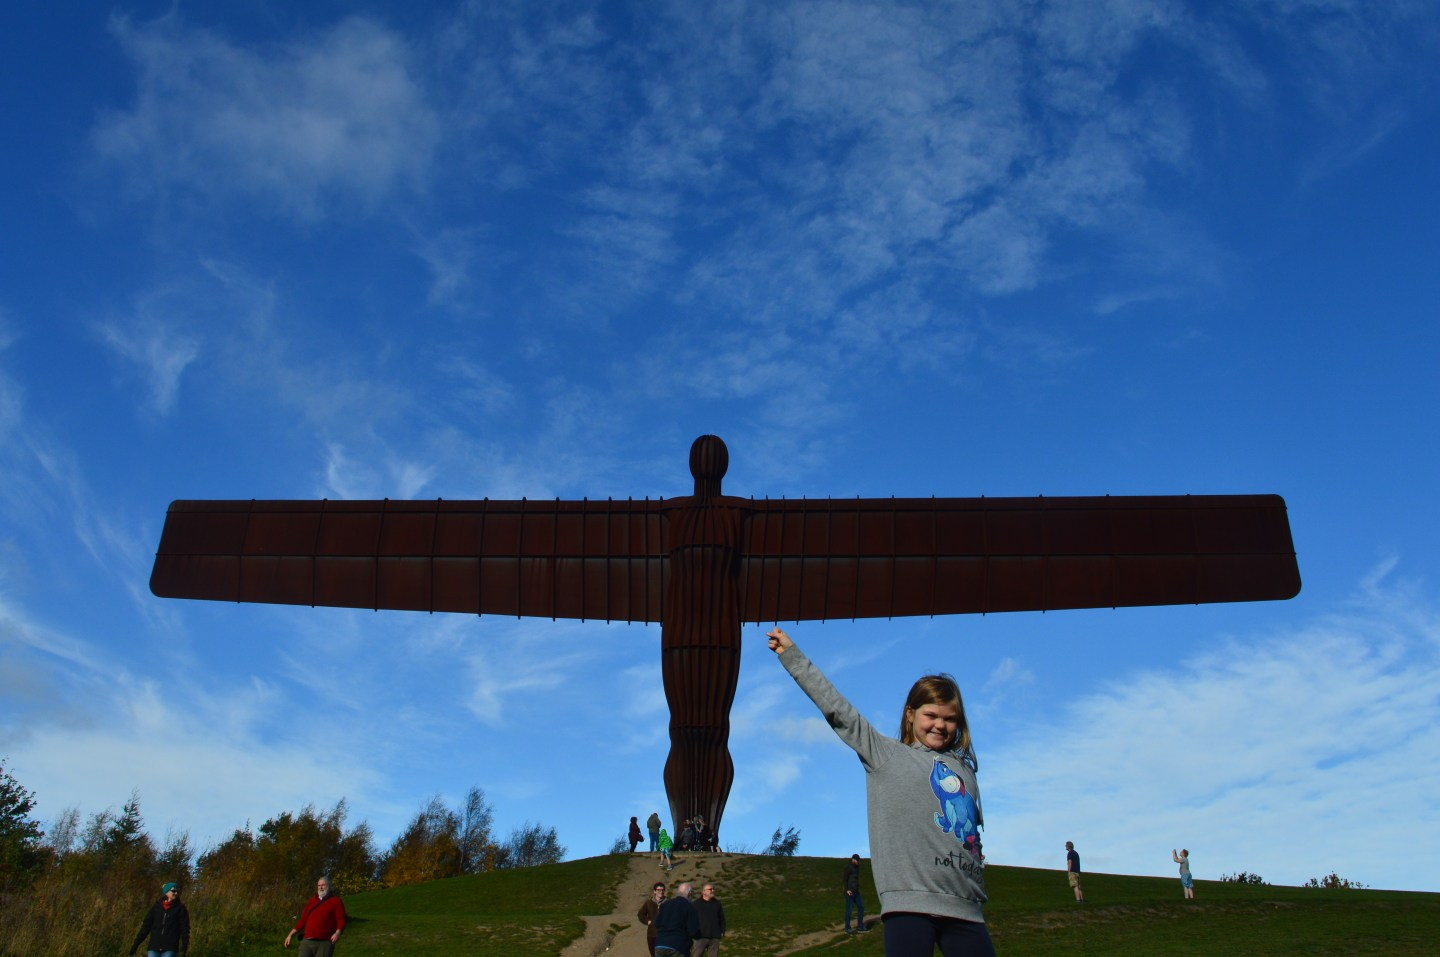 A day trip to Newcastle with a stop at the Angel of the north